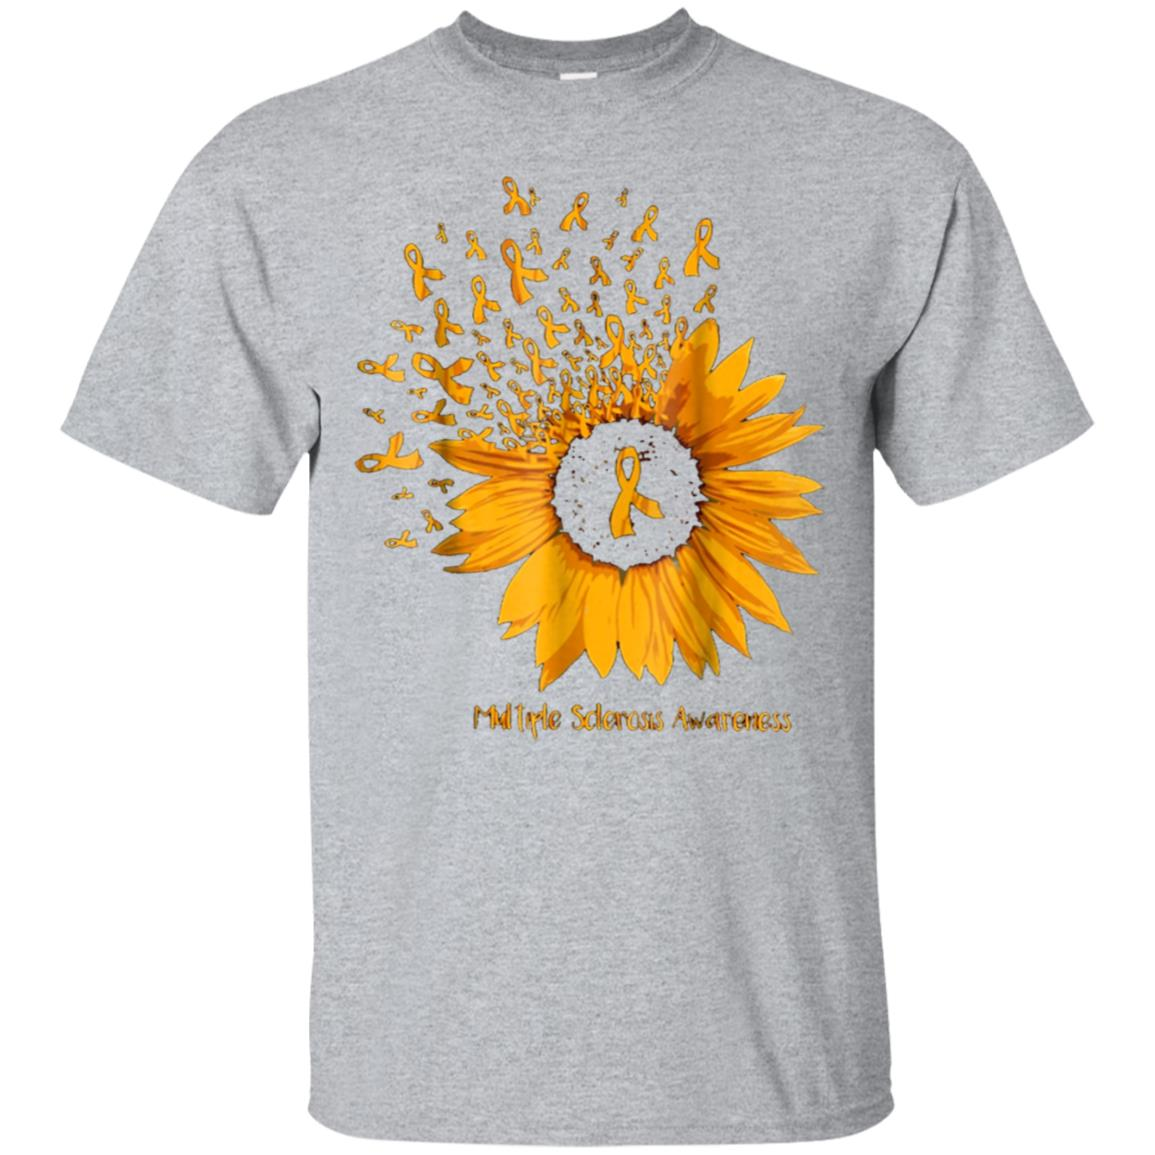 multiple sderosis awareness sunflower T shirt 99promocode